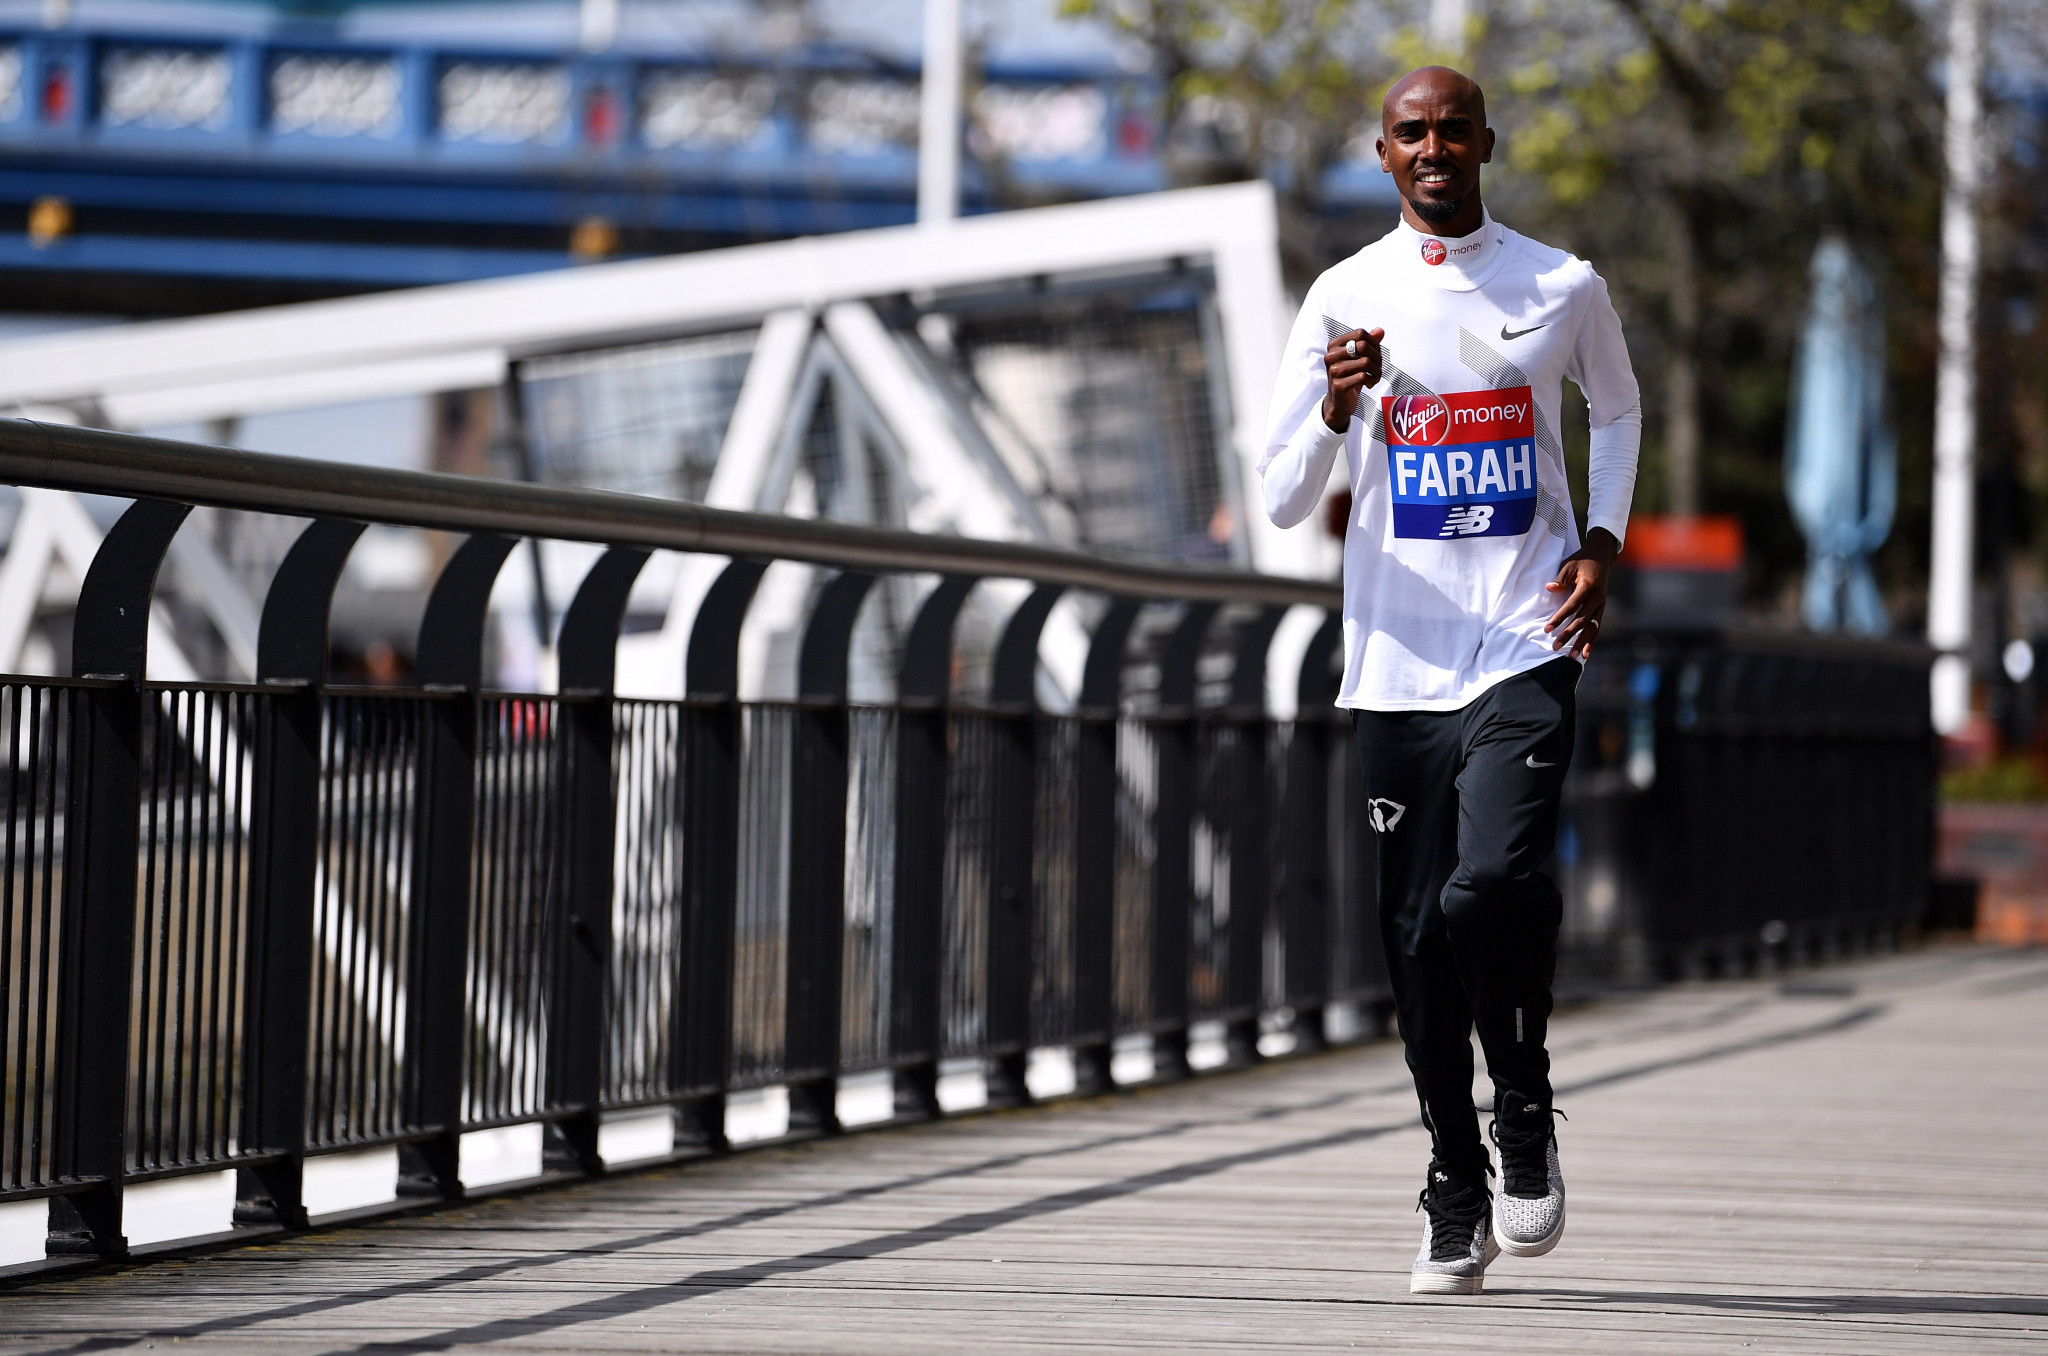 Sir Mo Farah knows he has to improve dramatically if he is to win a medal in Tokyo ©Getty Images